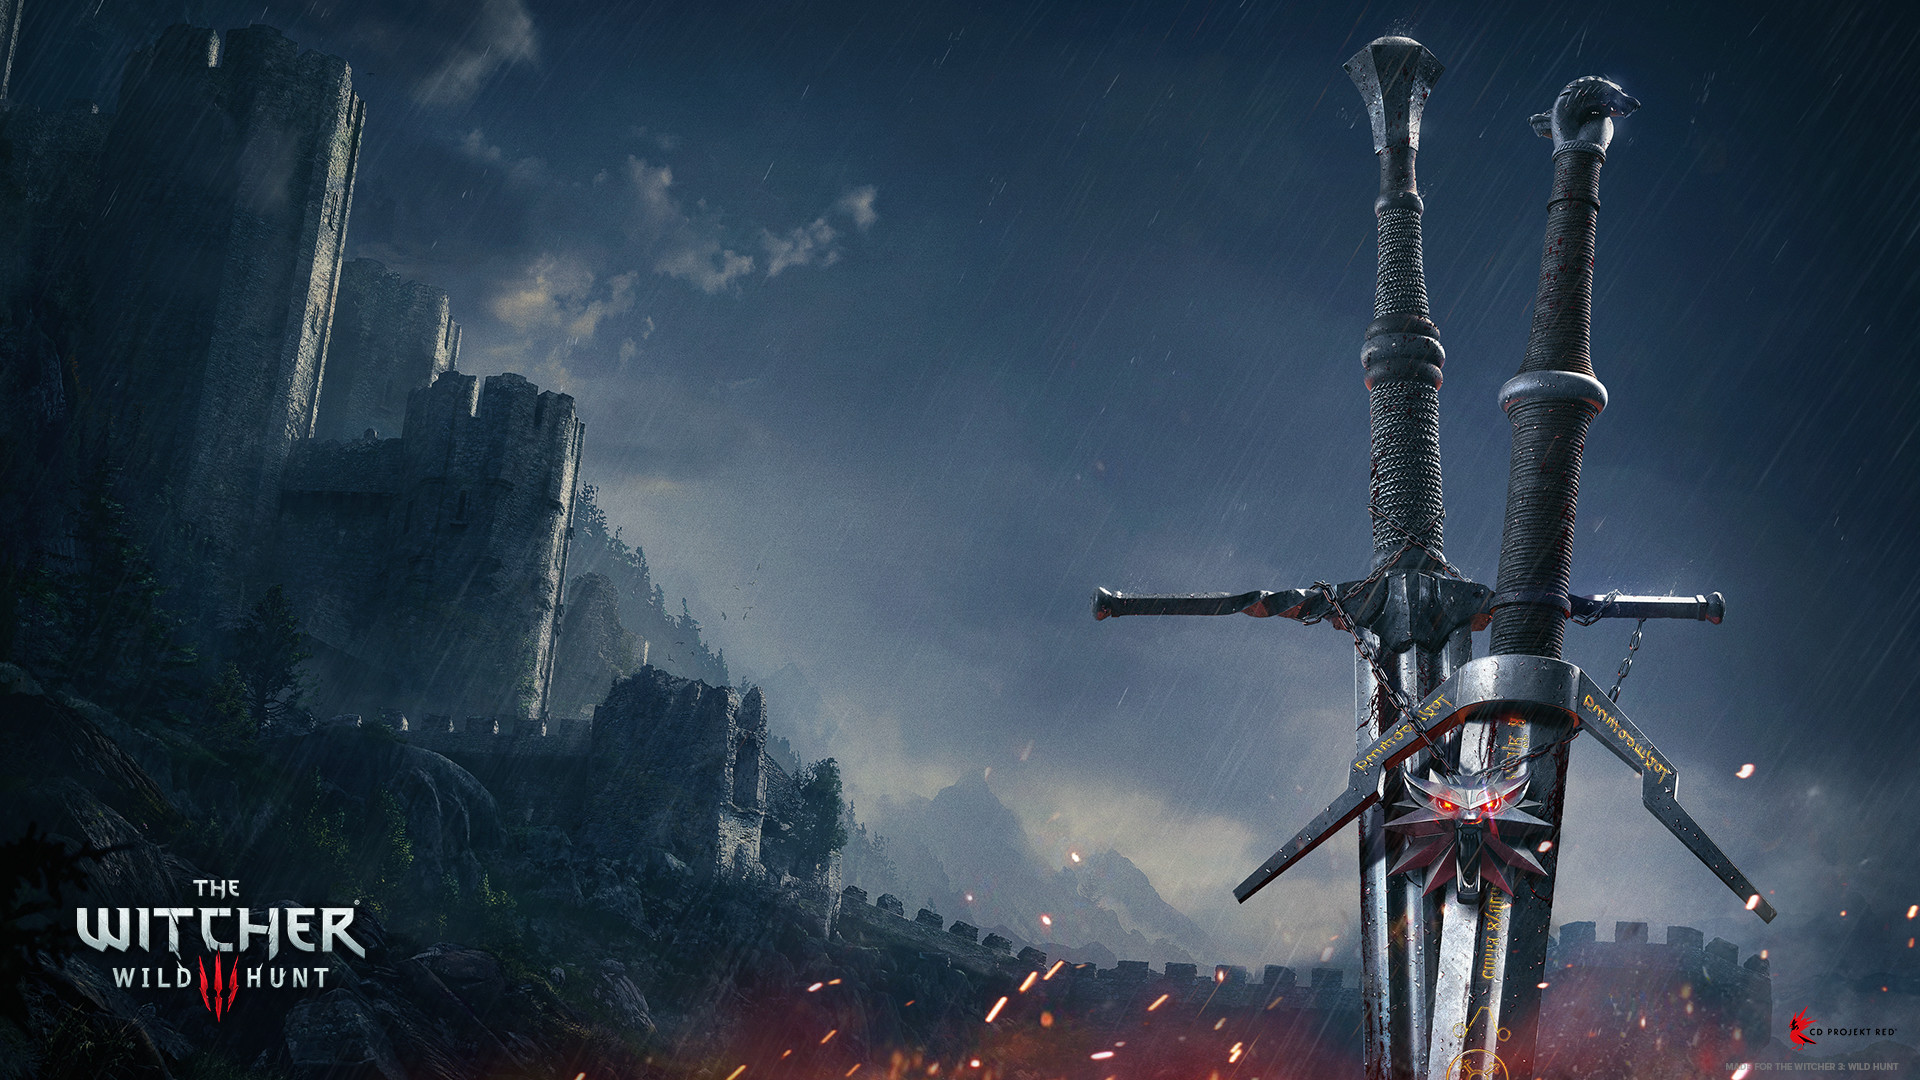 463 The Witcher 3: Wild Hunt HD Wallpapers | Backgrounds – Wallpaper Abyss